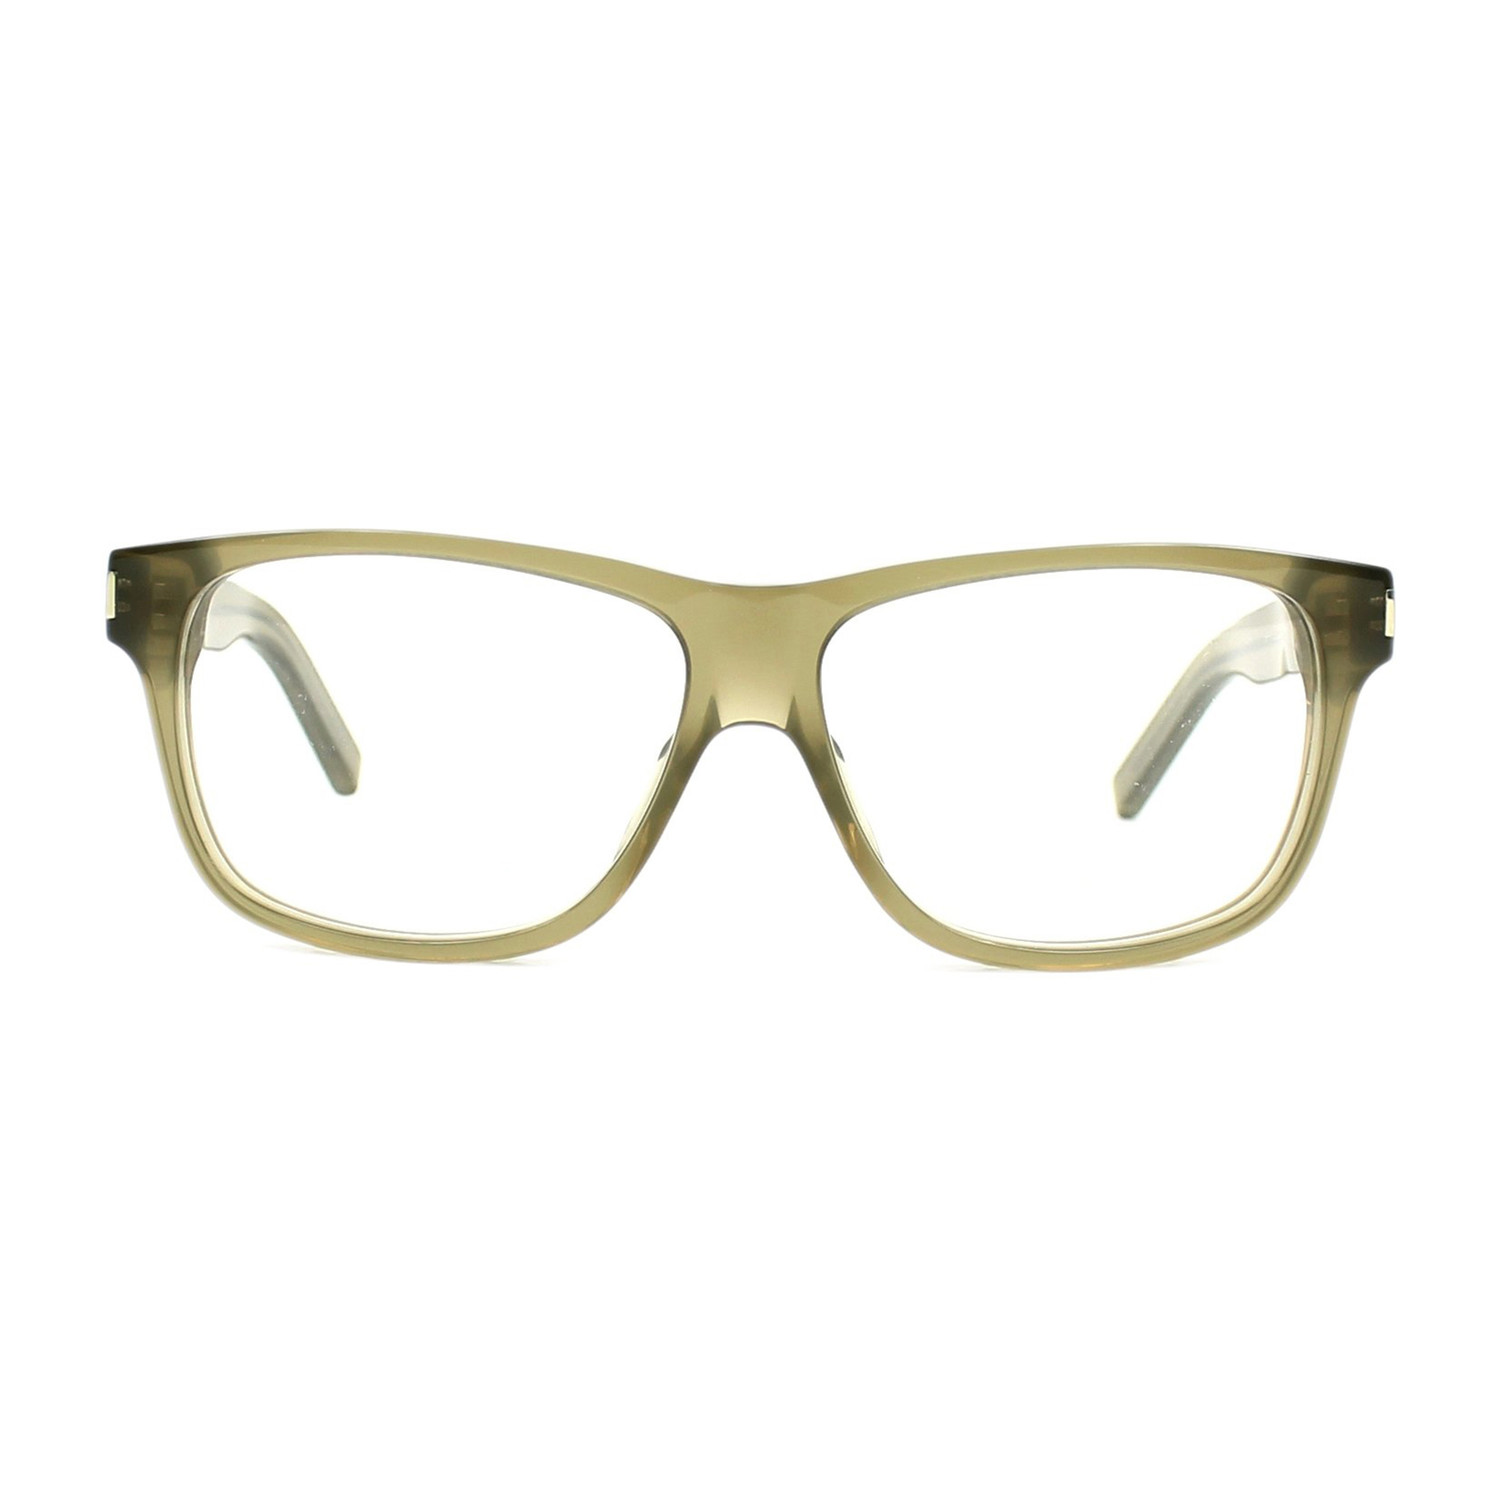 2df182b7c115a 16dc1fe3e017f6ada9008f0e946be8e0 medium. Yves Saint Laurent    Acetate Eyeglass  Frames    Green